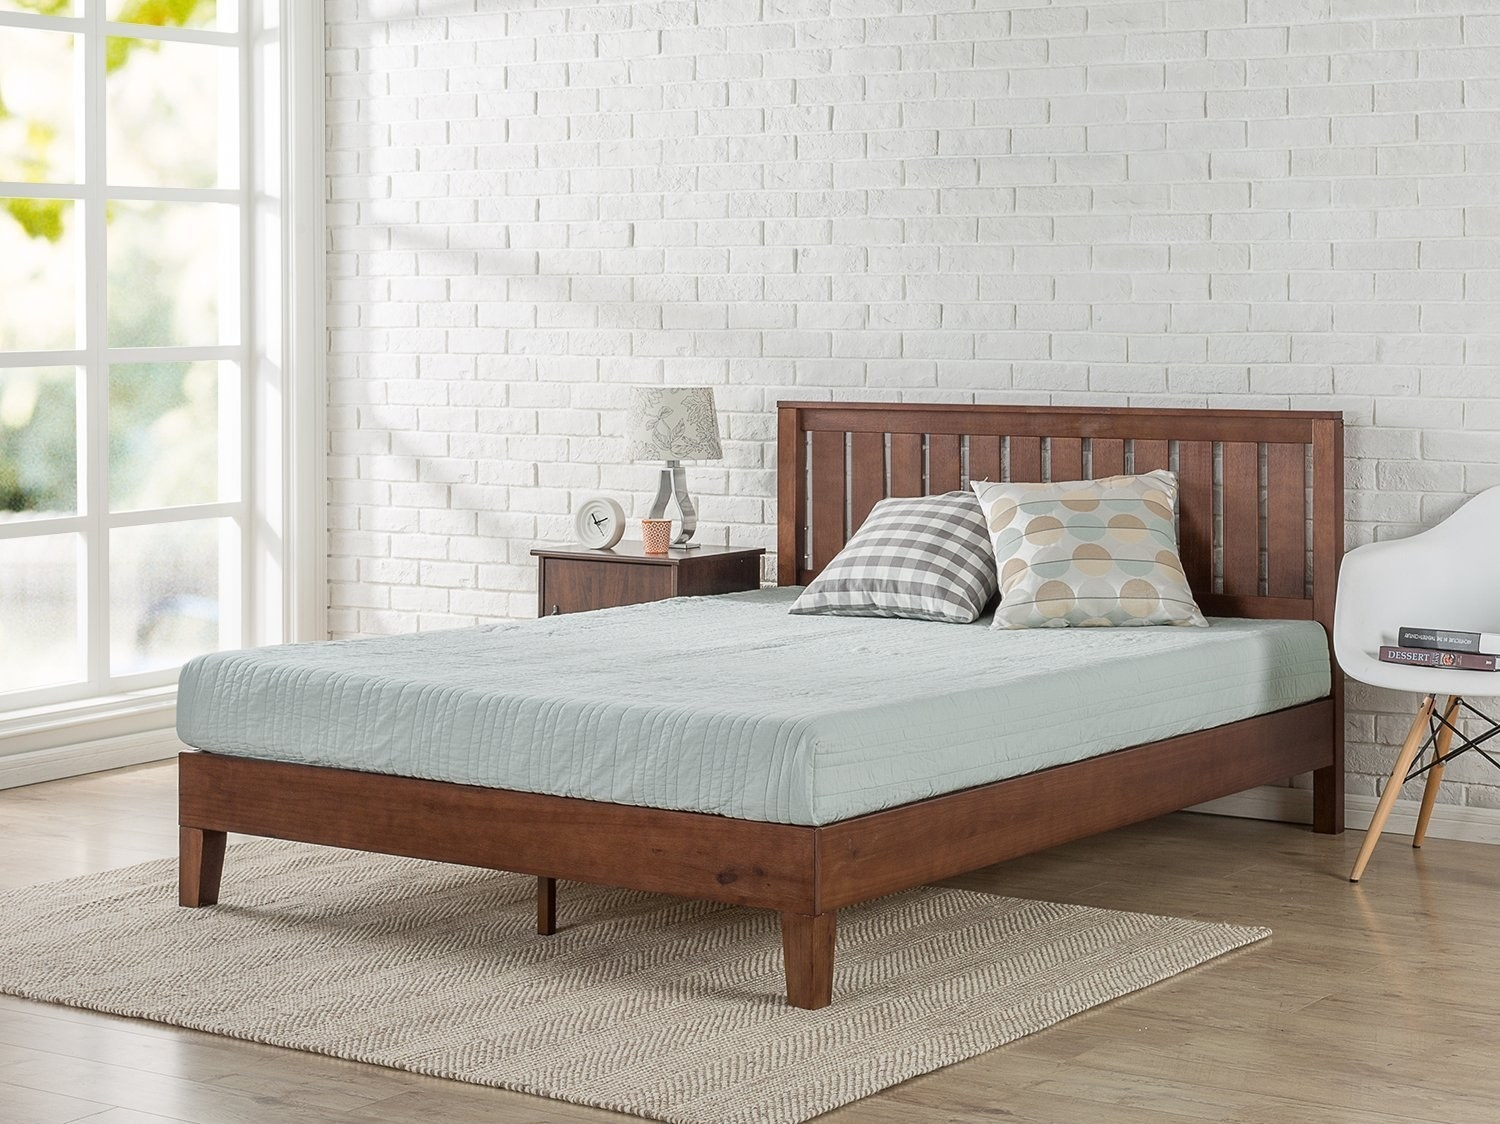 side view of the wooden slatted bed frame